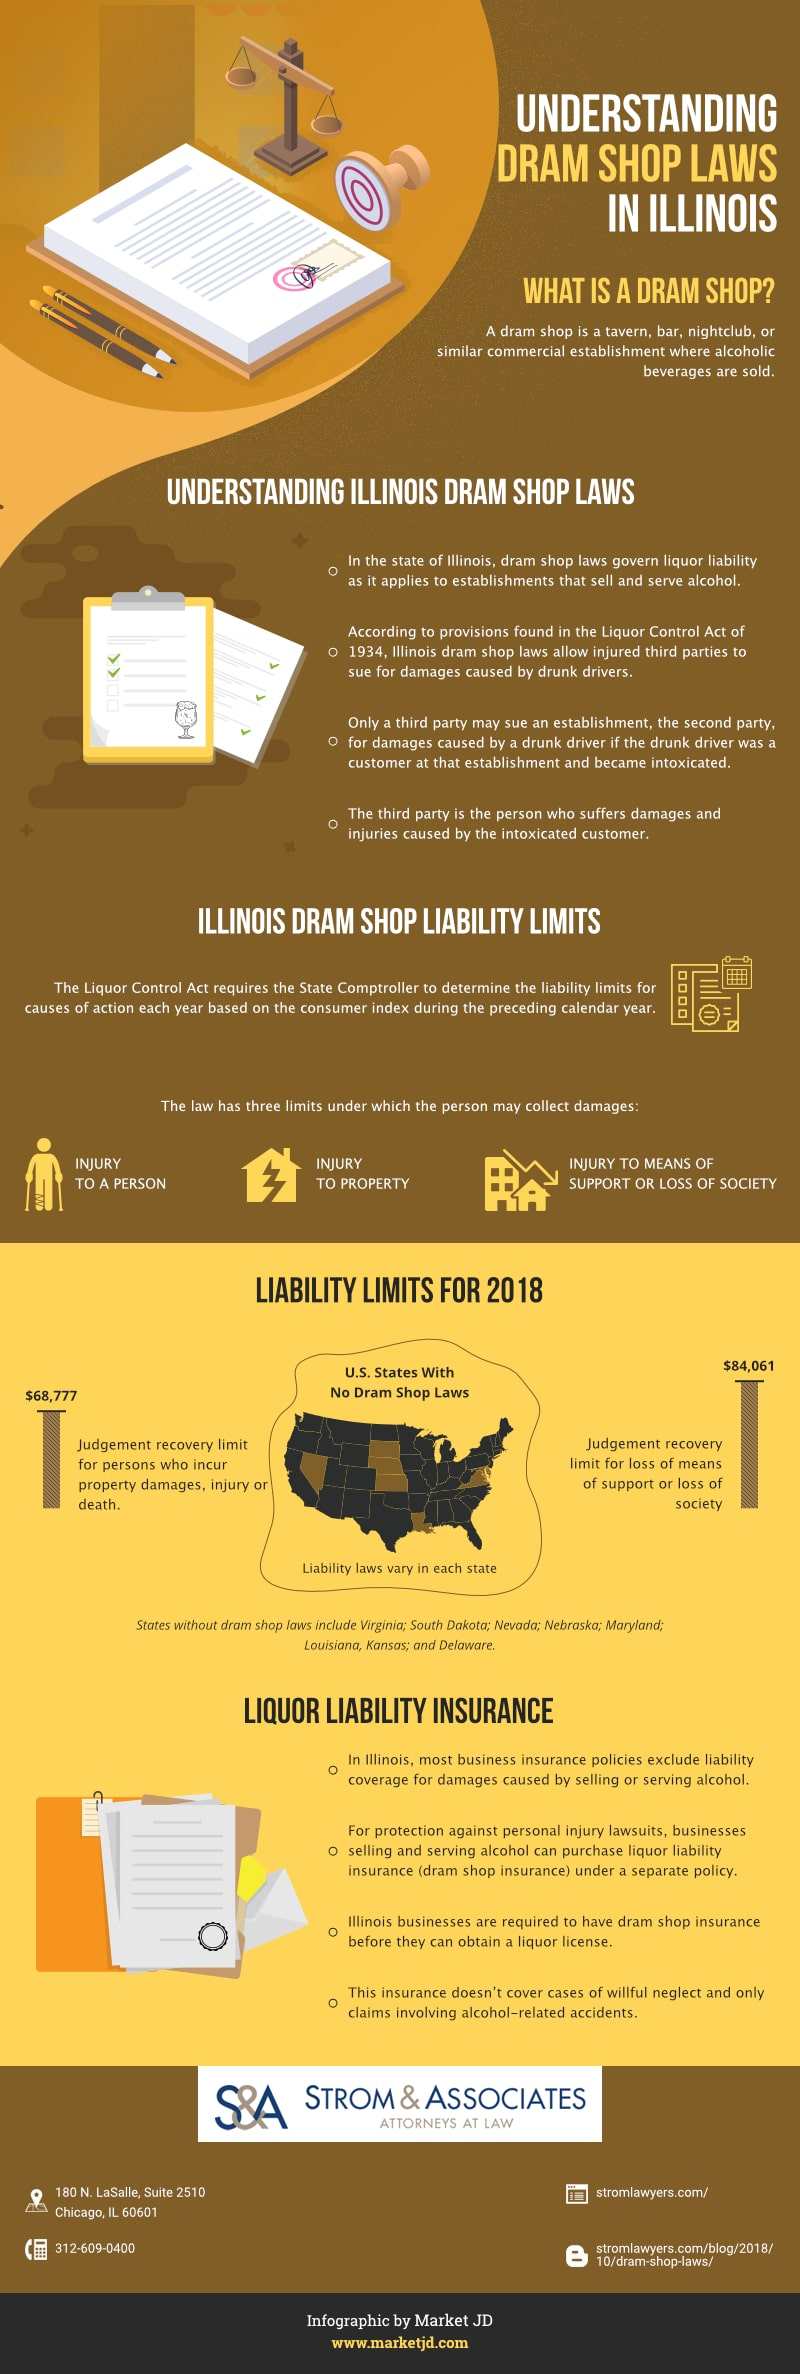 DRAM SHOP LAWS IN ILLINOIS_19122018